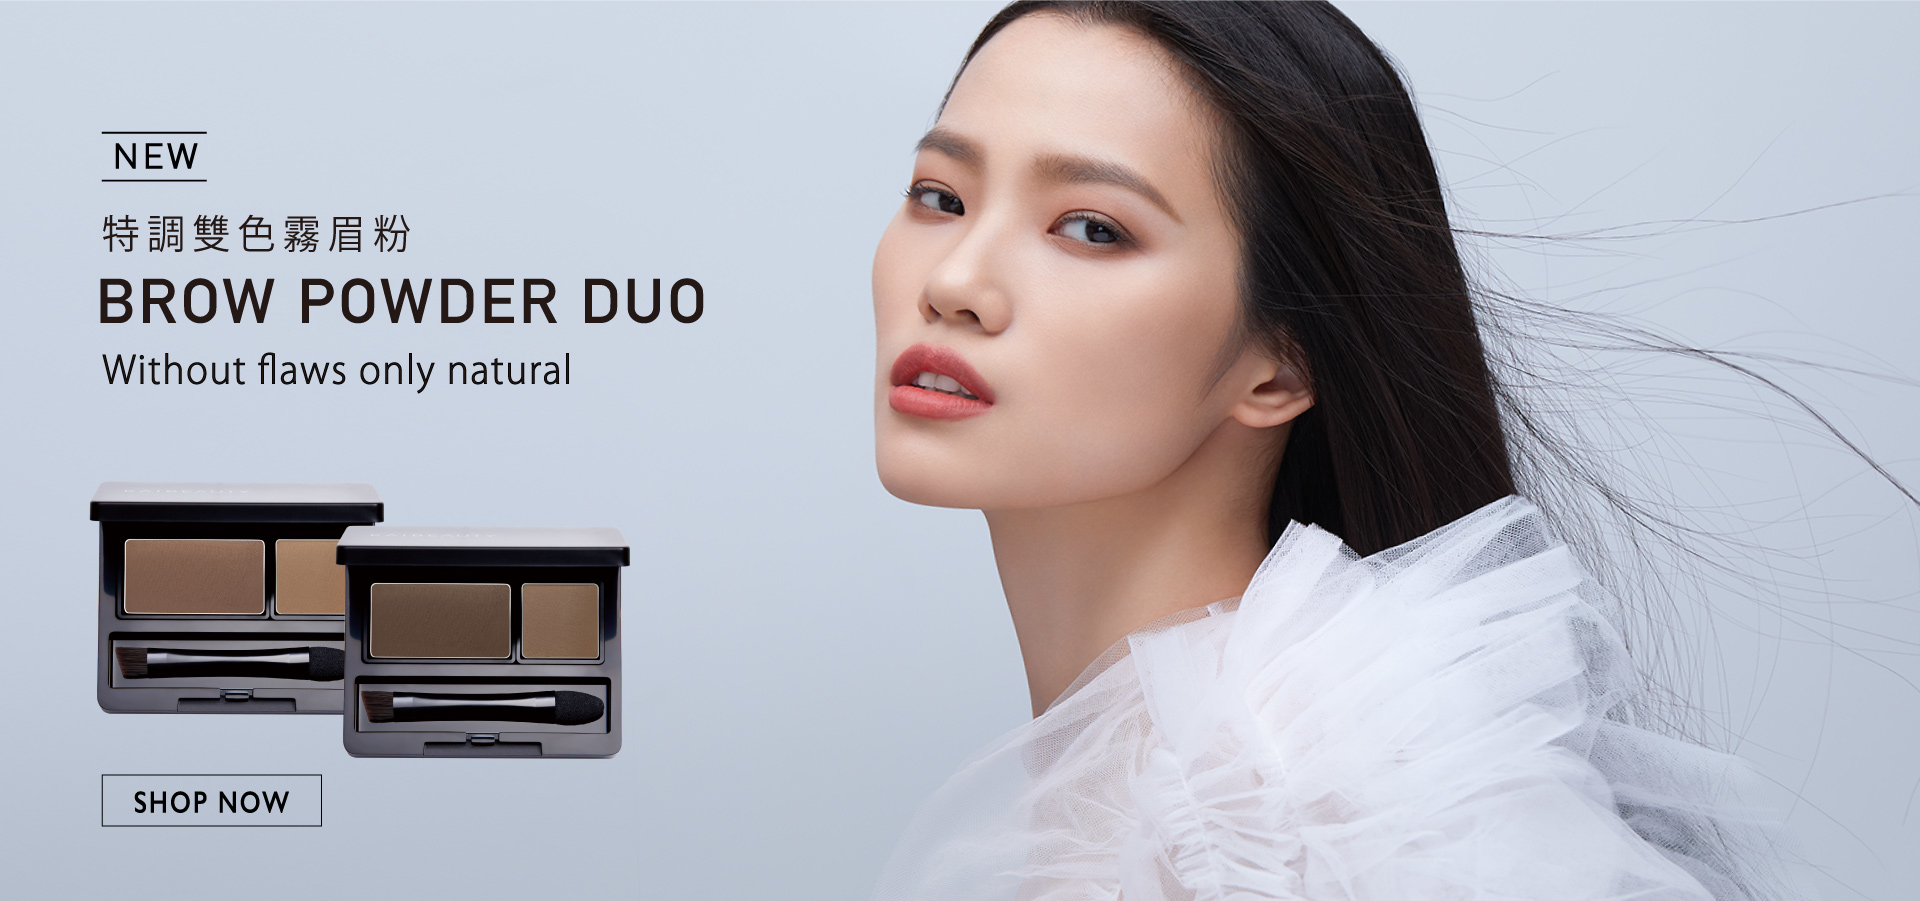 kaibeauty, eyebrow, brow, brow powder duo, eye, 霧眉, 眉粉, shipping, makeup, 小凱, 凱咪